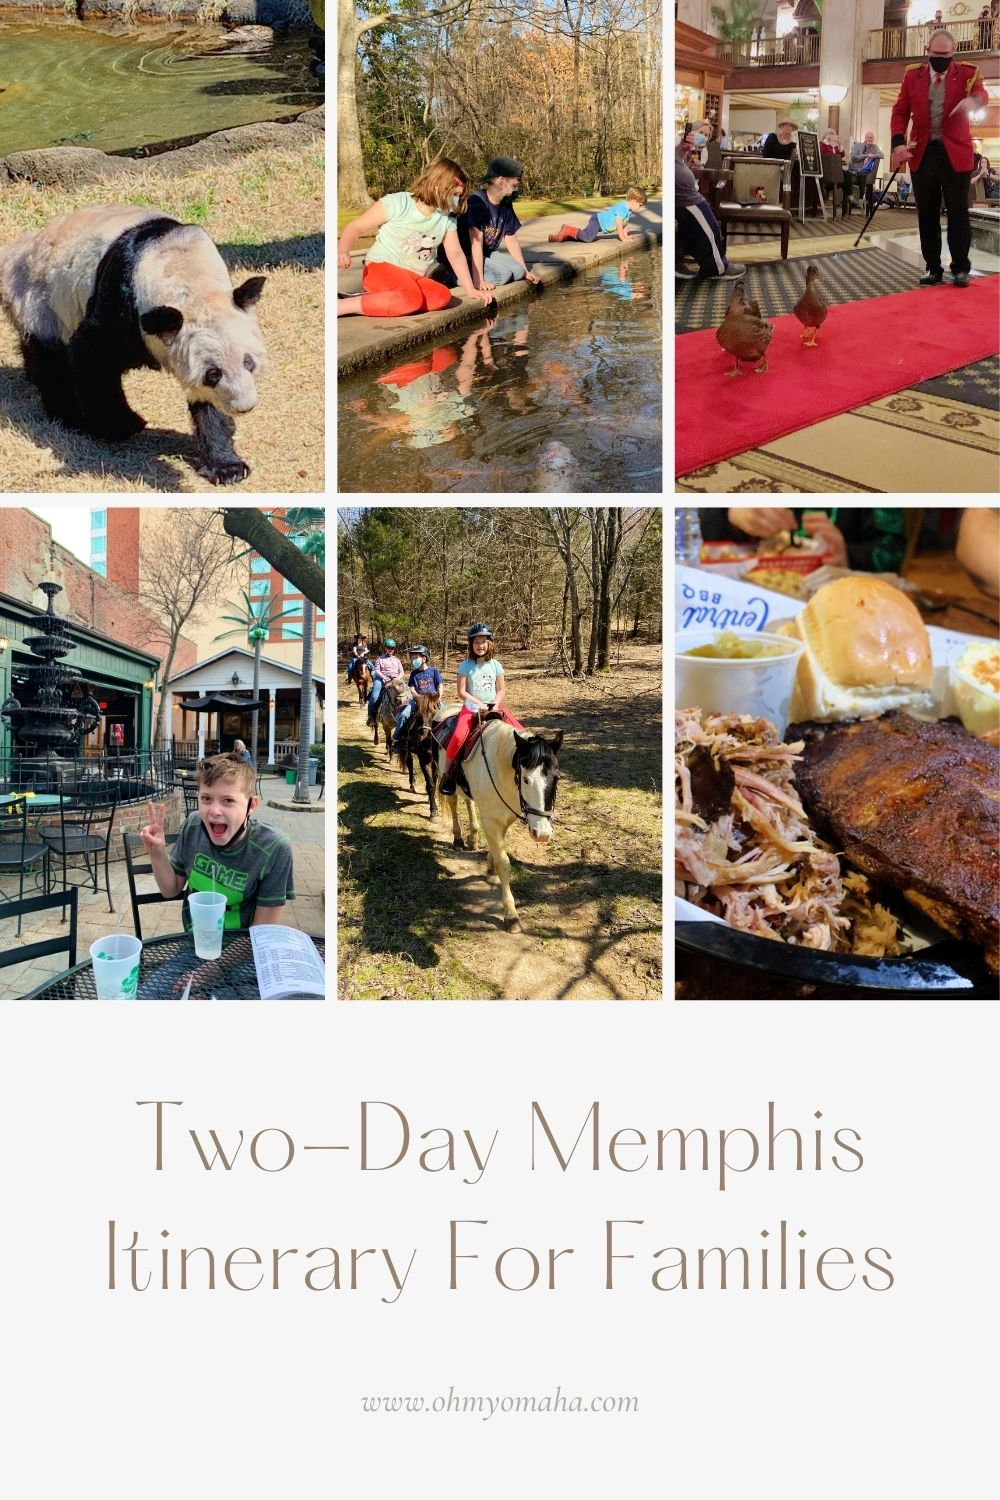 Family-friendly itinerary for Memphis PLUS tips on where to stay and restaurants to try.